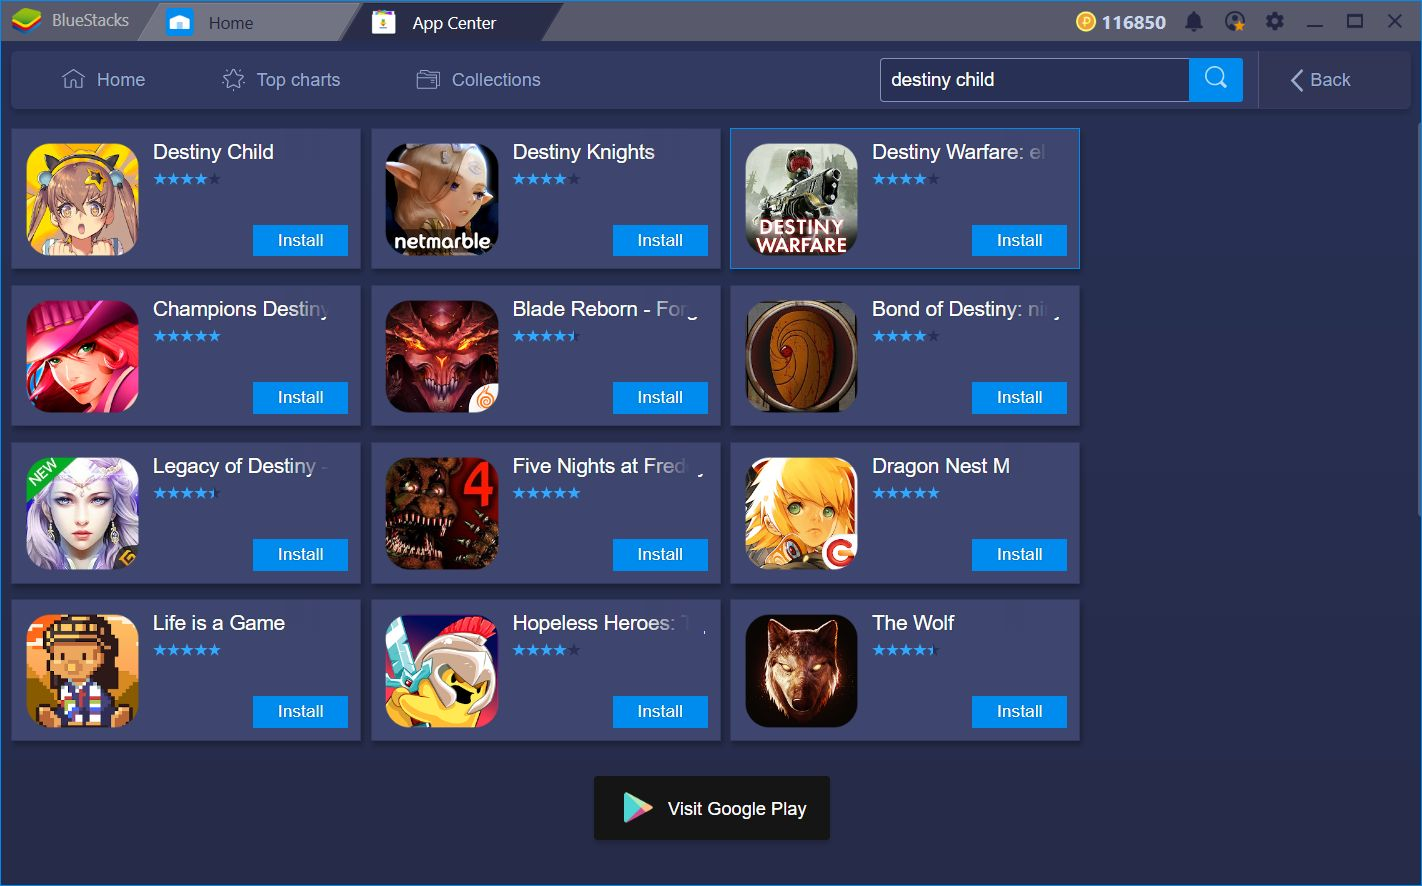 Make the most of Gacha Games on BlueStacks: Destiny Child